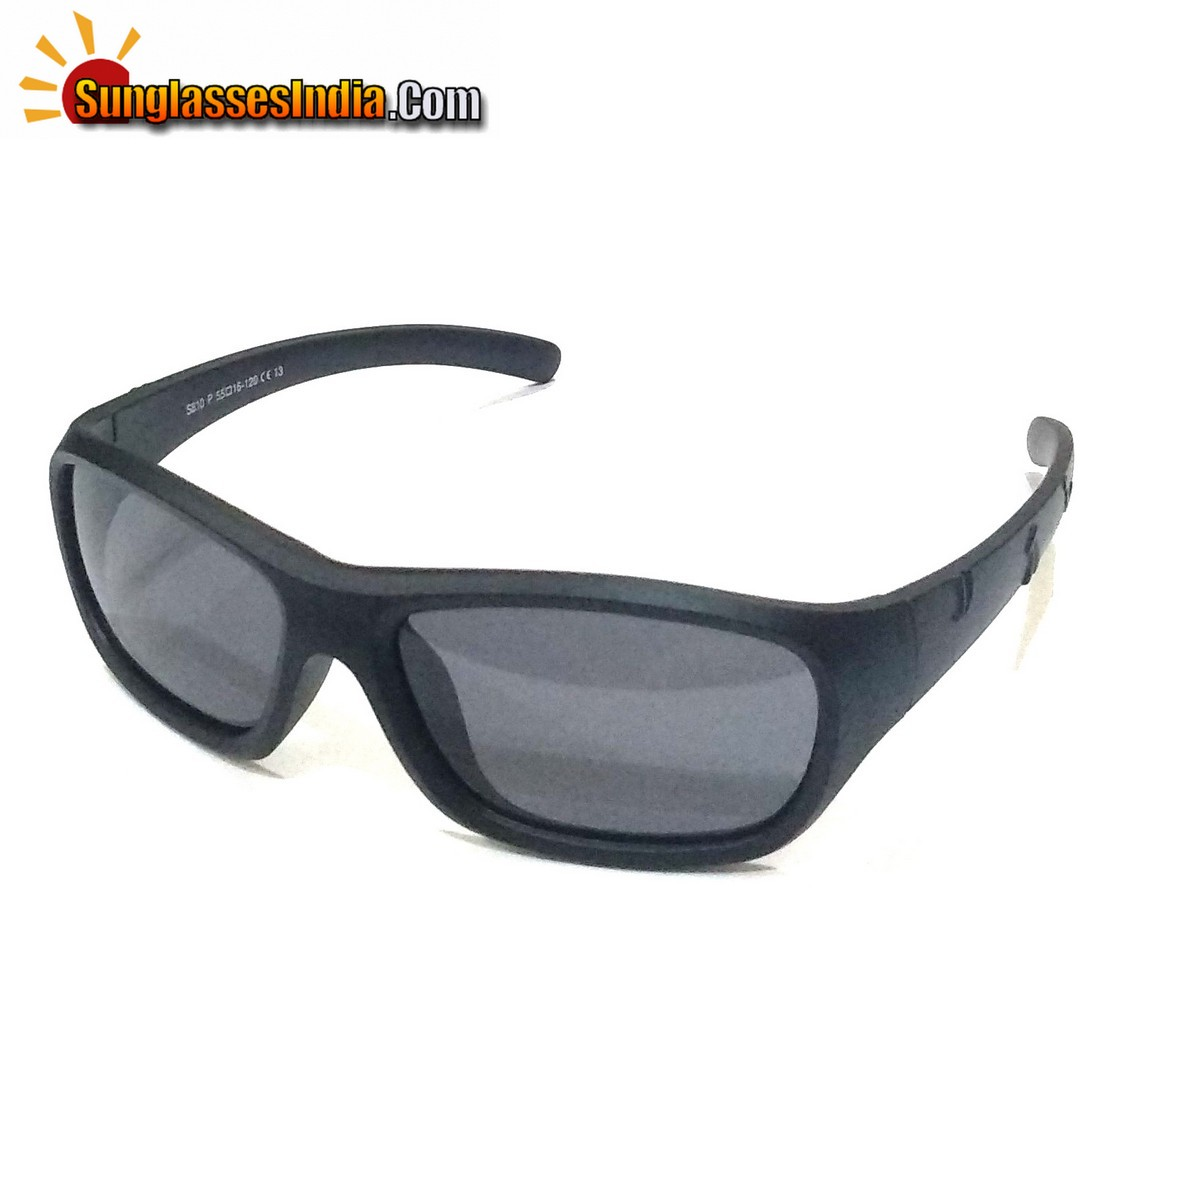 Unbreakable Kids Polarized Sunglasses Light Weight TR Material S810Black